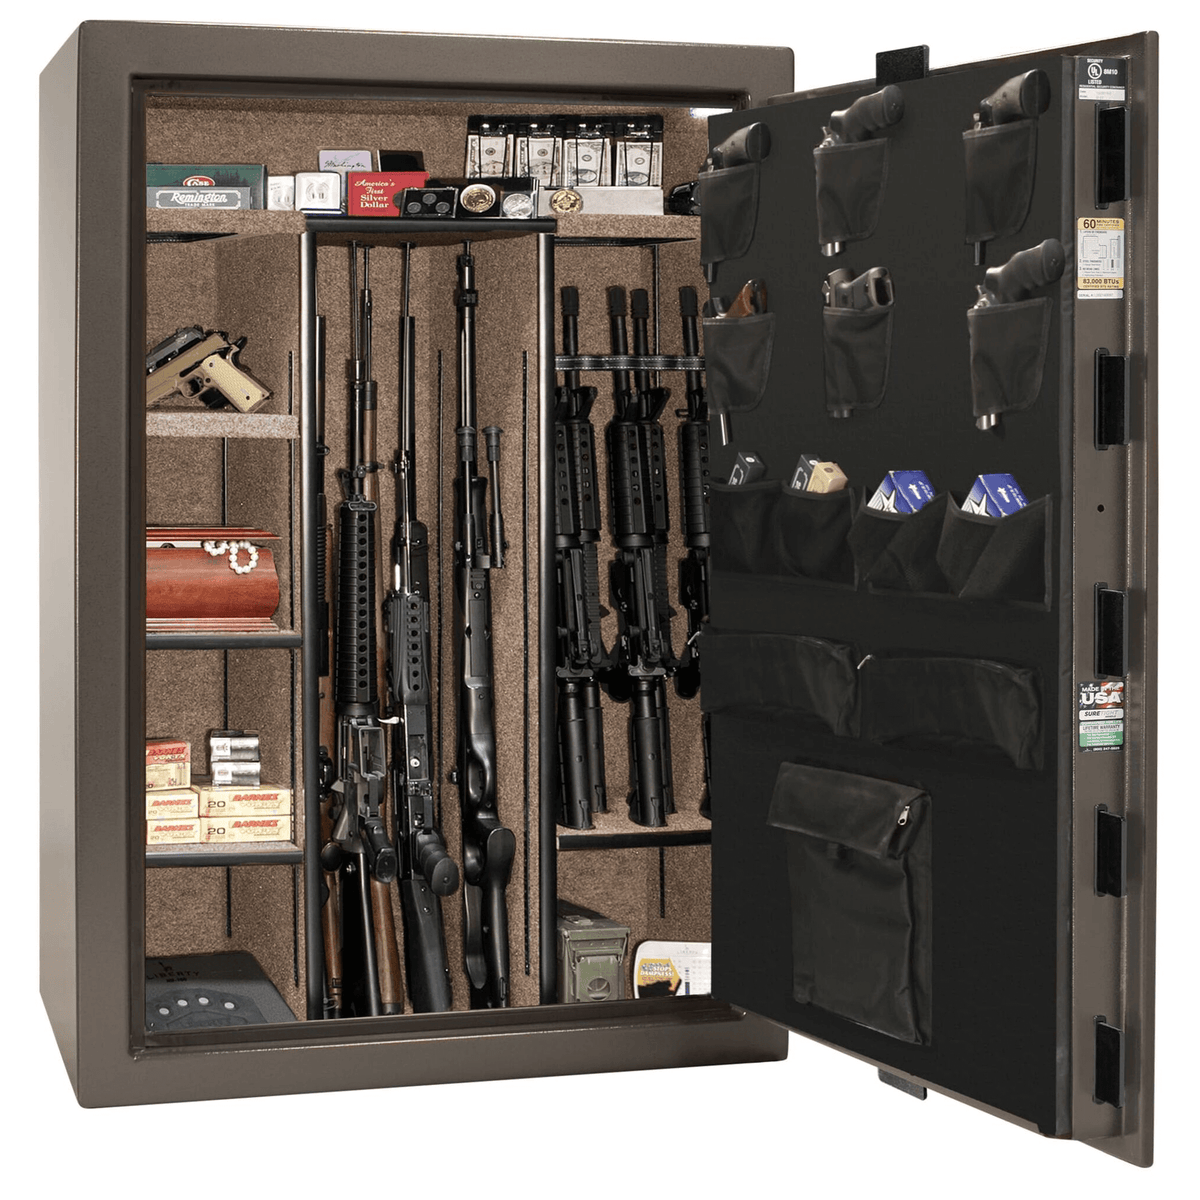 "Fatboy Jr Extreme | 48 | Level 3 Security | 60 Minute Fire Protection | Bronze | Black Electronic Lock | 60.5""(H) x 42""(W) x 25""(D)"